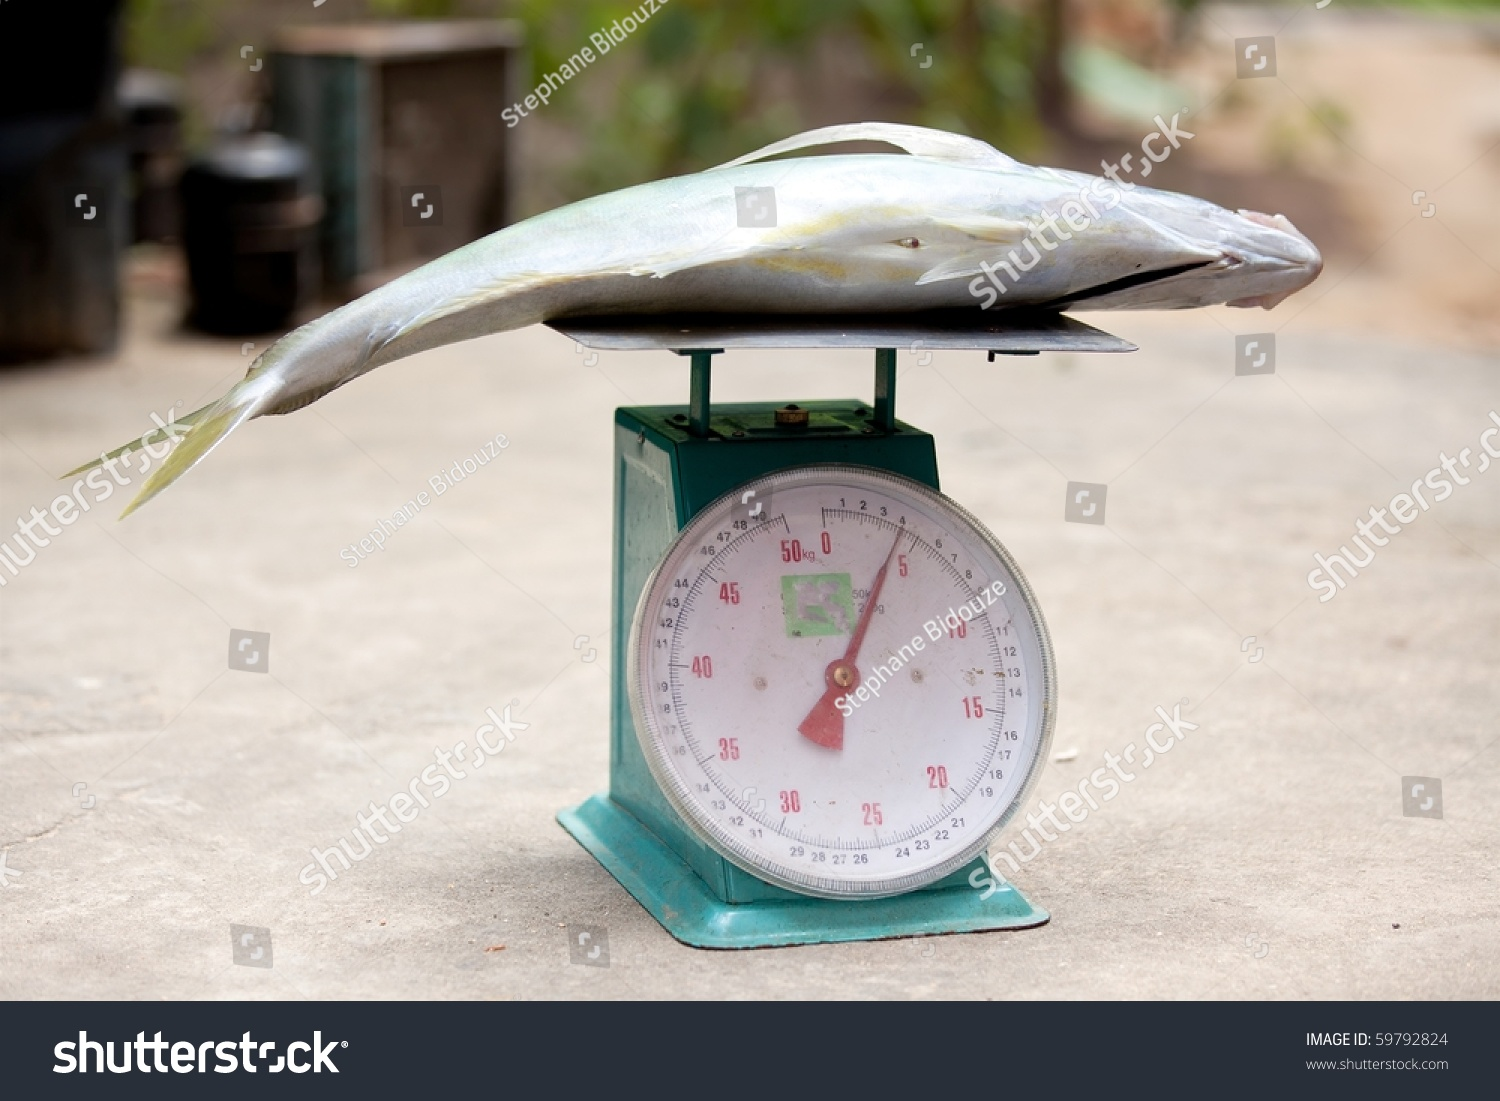 Libras A Quilos 4 Kilograms Fish On Libra In Asian Market Stock Photo